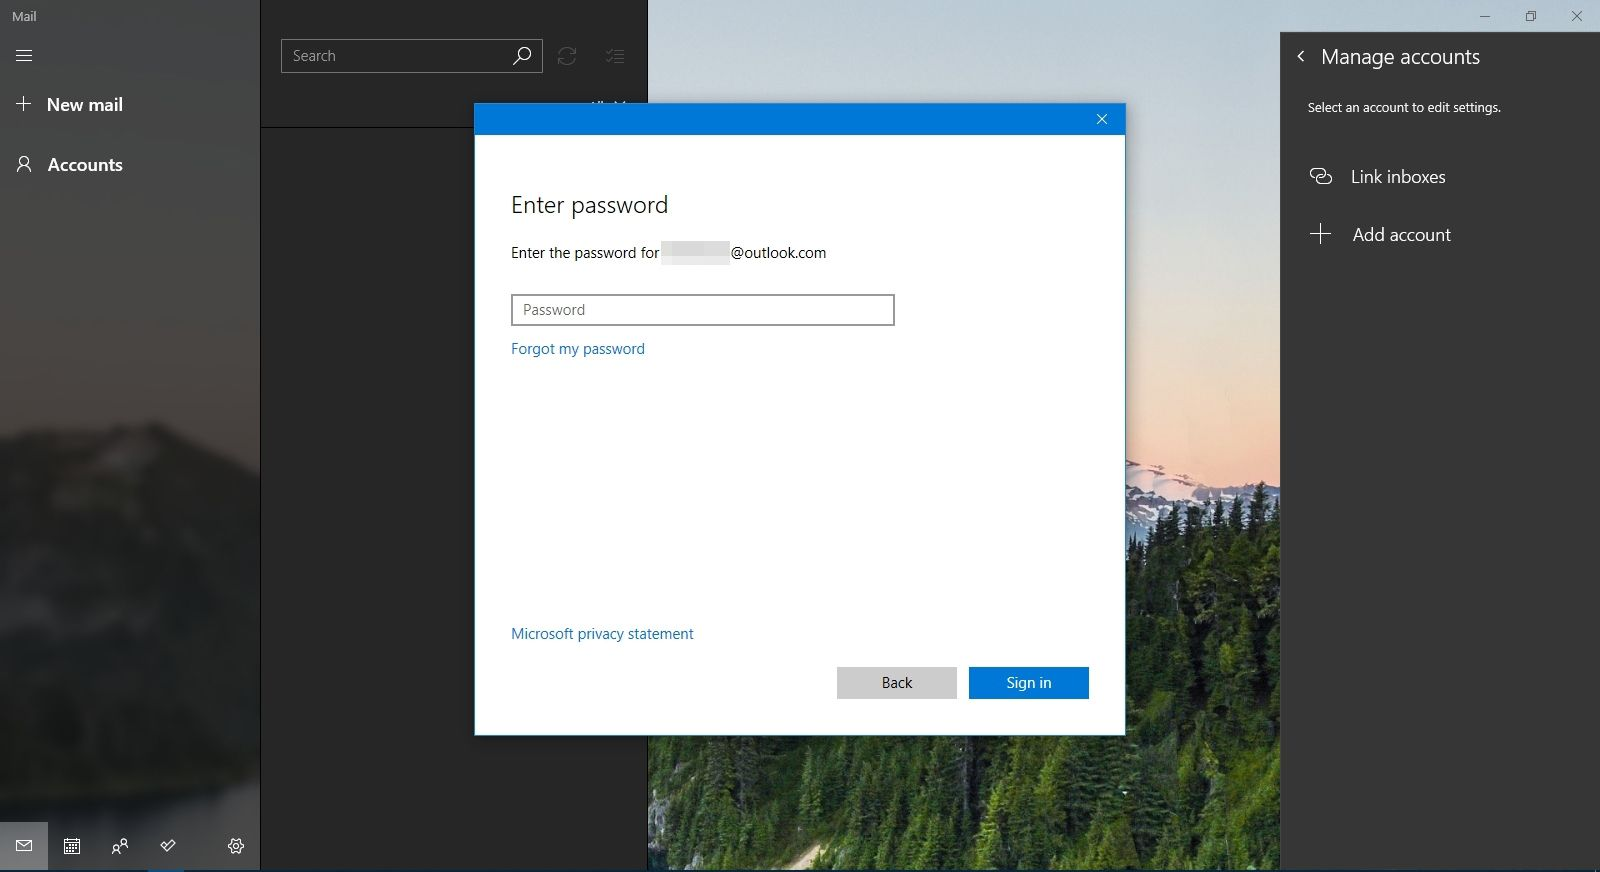 Prompt to enter a password for an email being setup in Windows Mail.